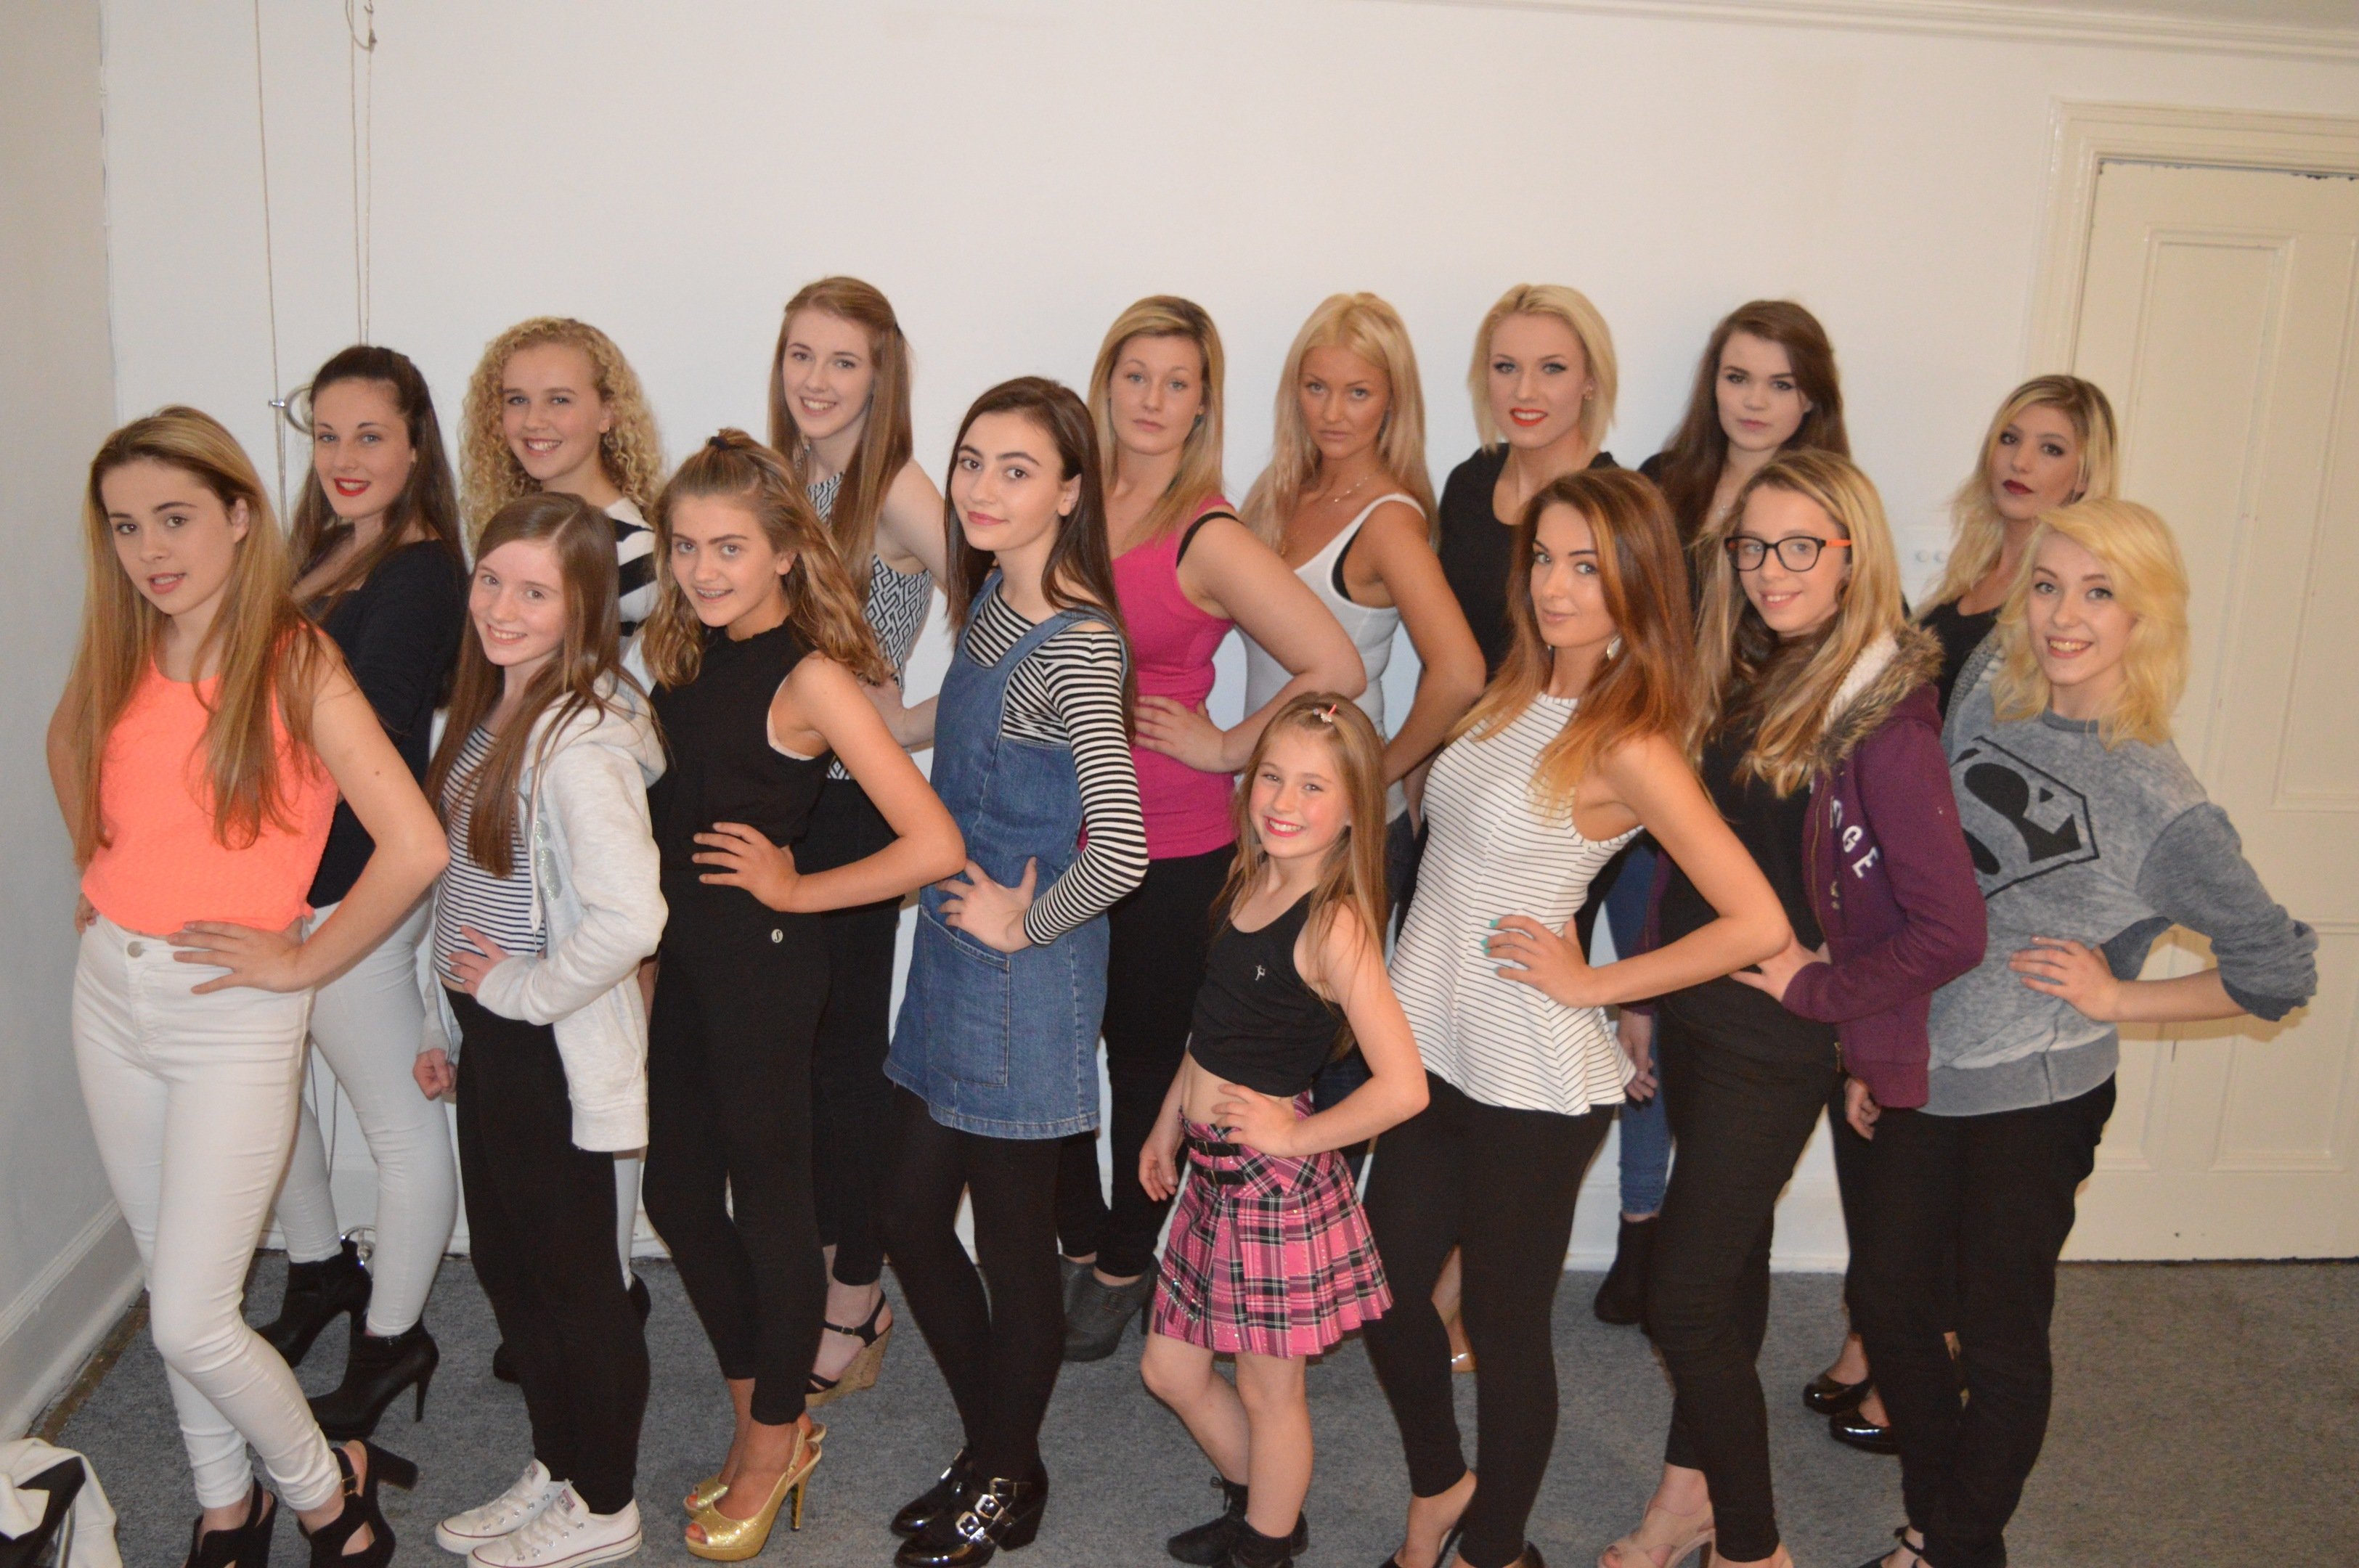 Some of the prospective models at Highland Fashion Week